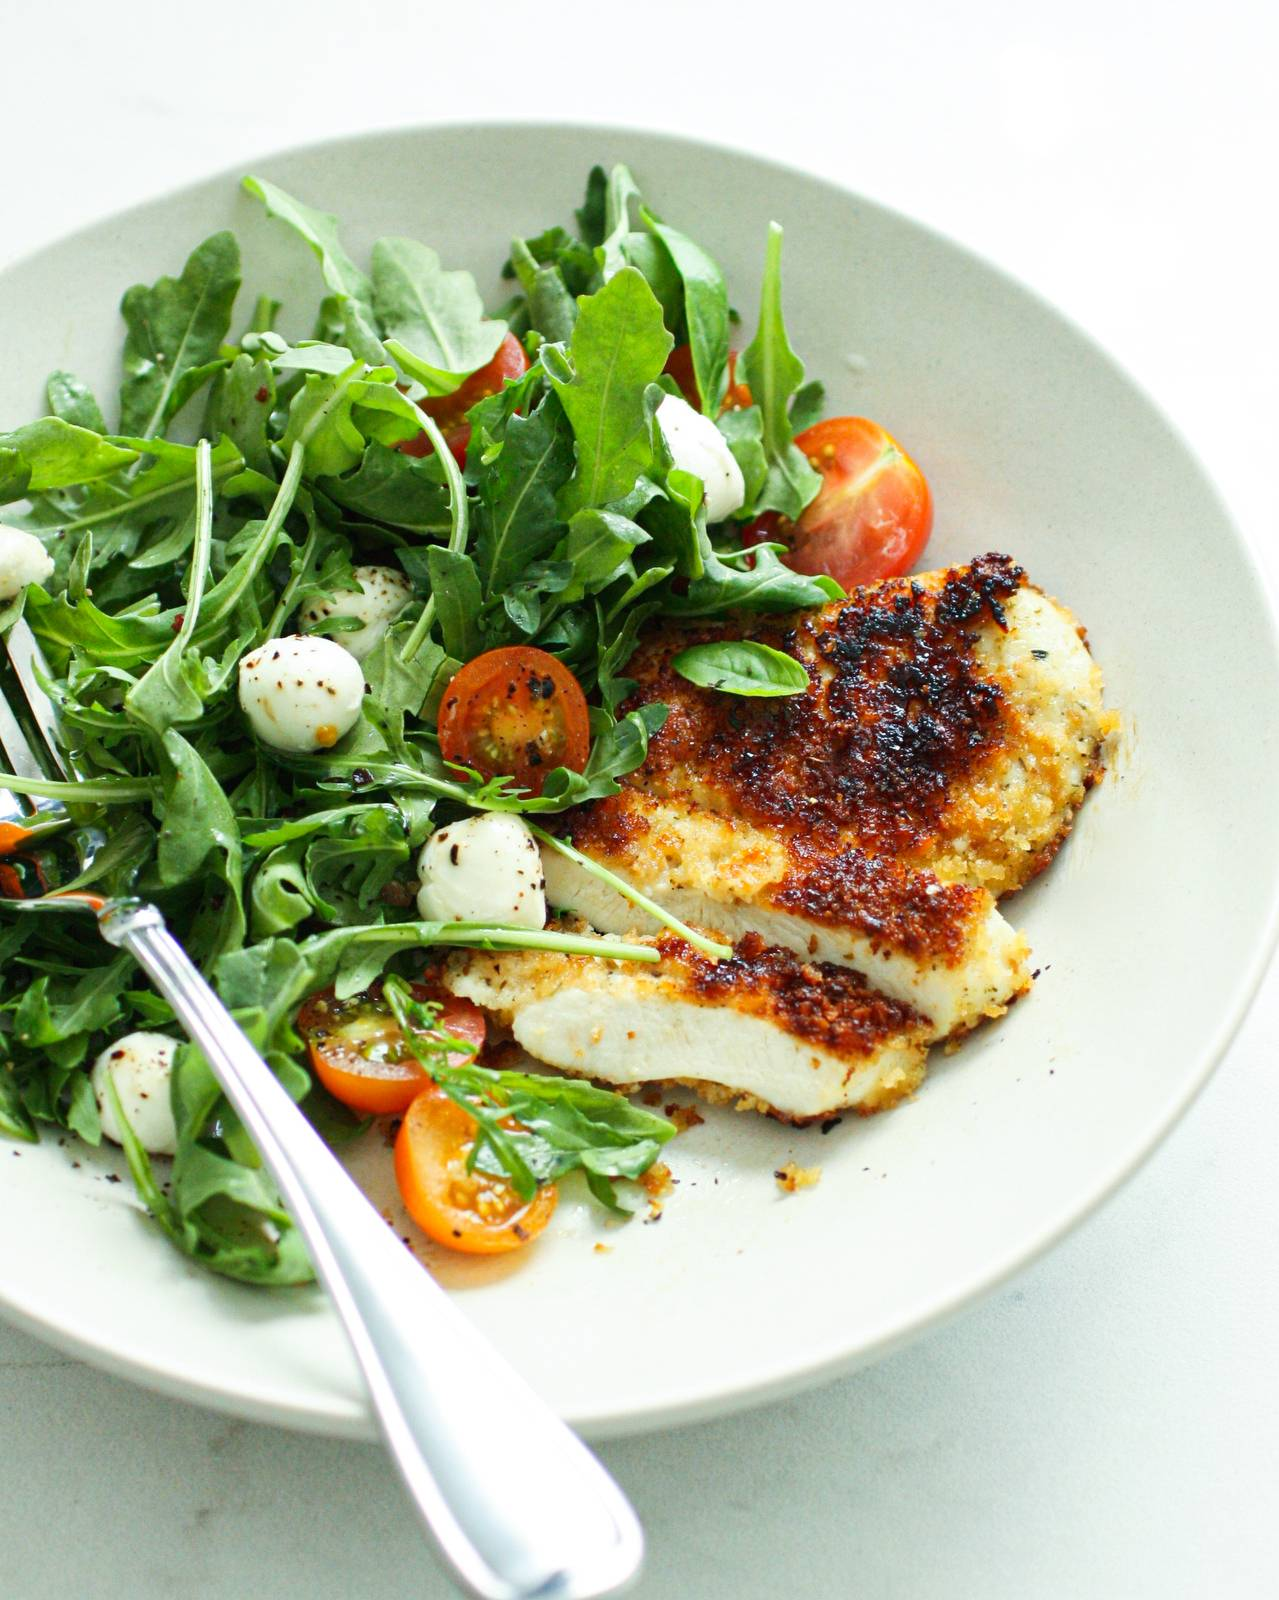 Summer Chicken Parmesan with Arugula Tomato Salad